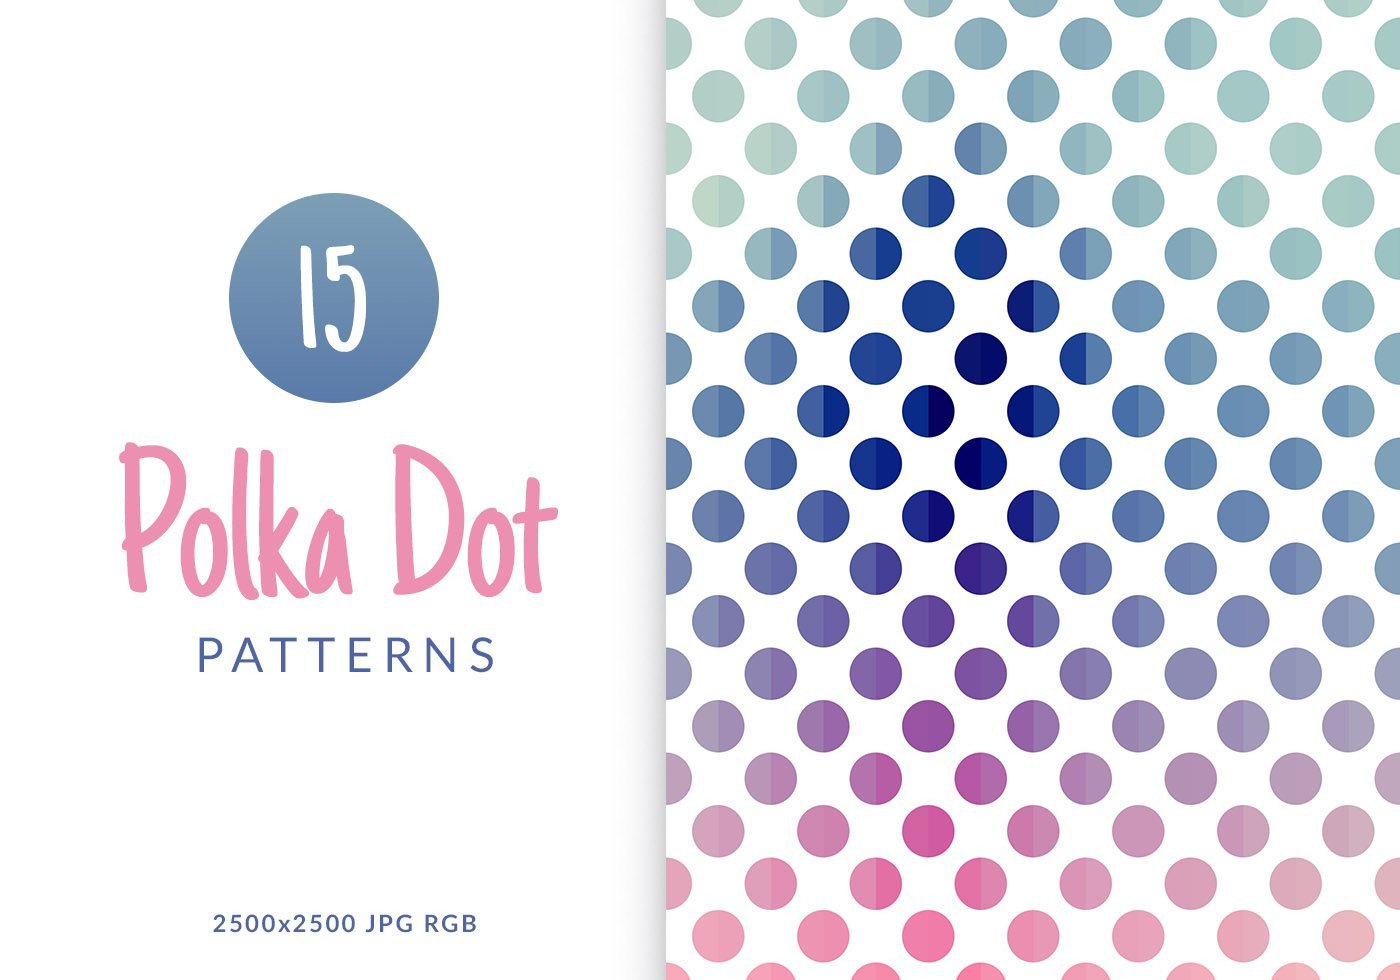 Polka Dot Brush Photoshop Polka Dot Backgrounds Free Shop Brushes at Brusheezy